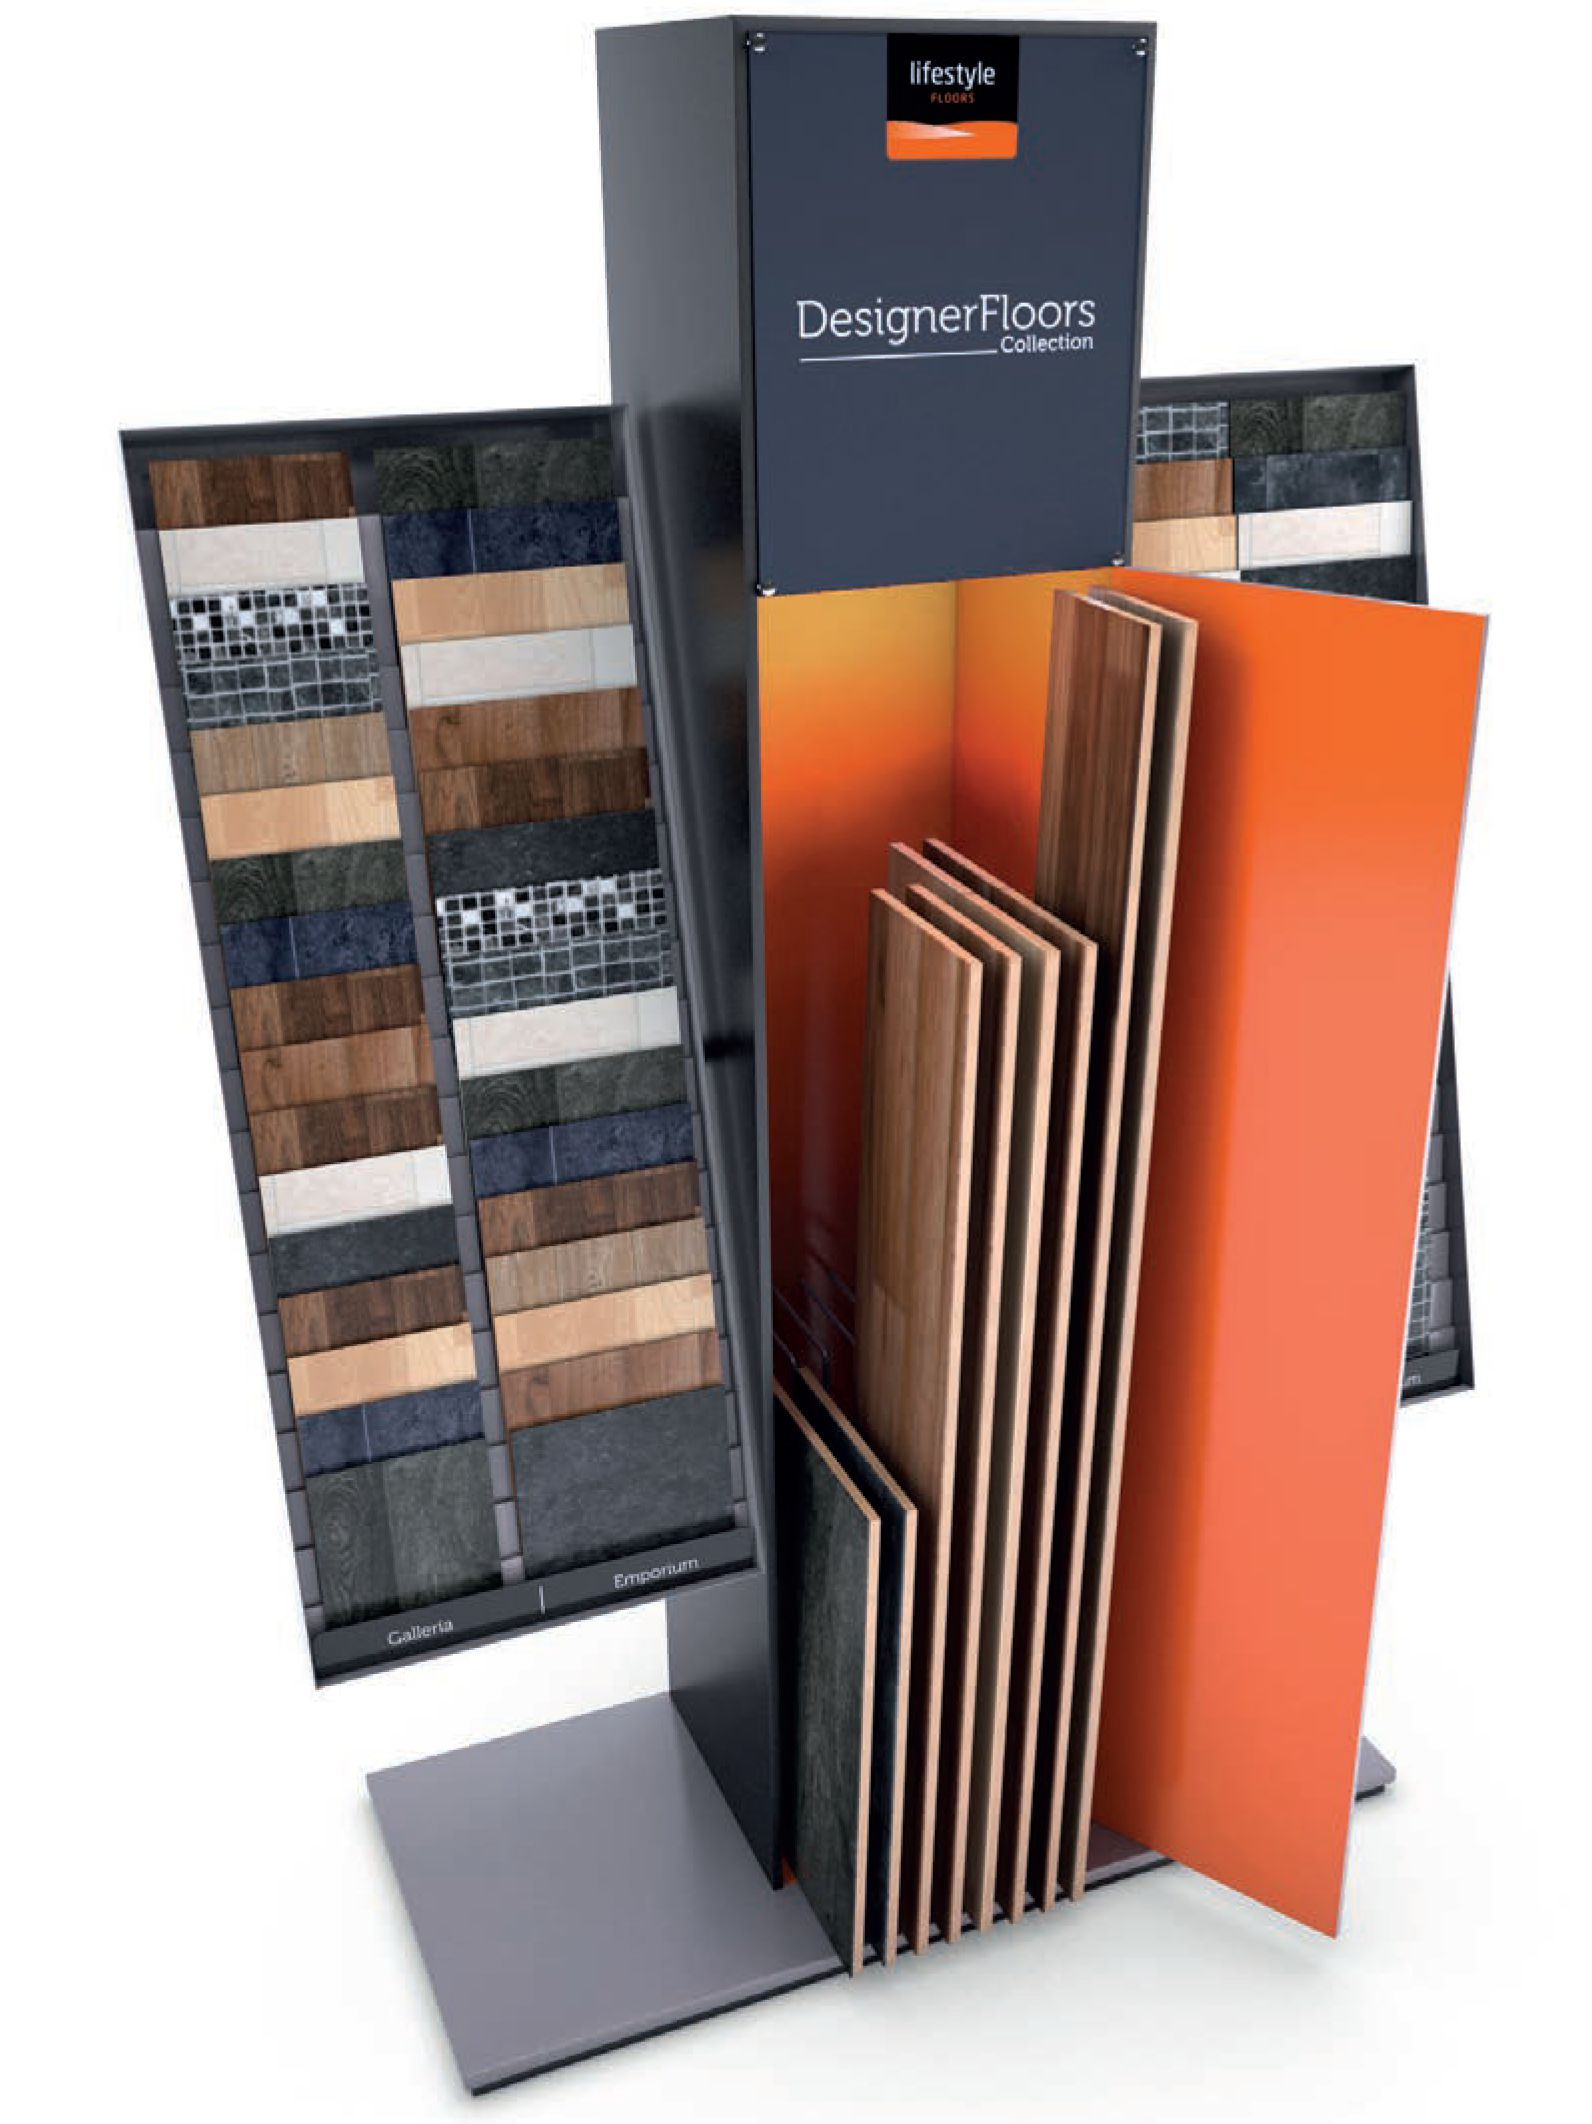 Lifestyle Floors luxury vinyl tile display stand angled and open